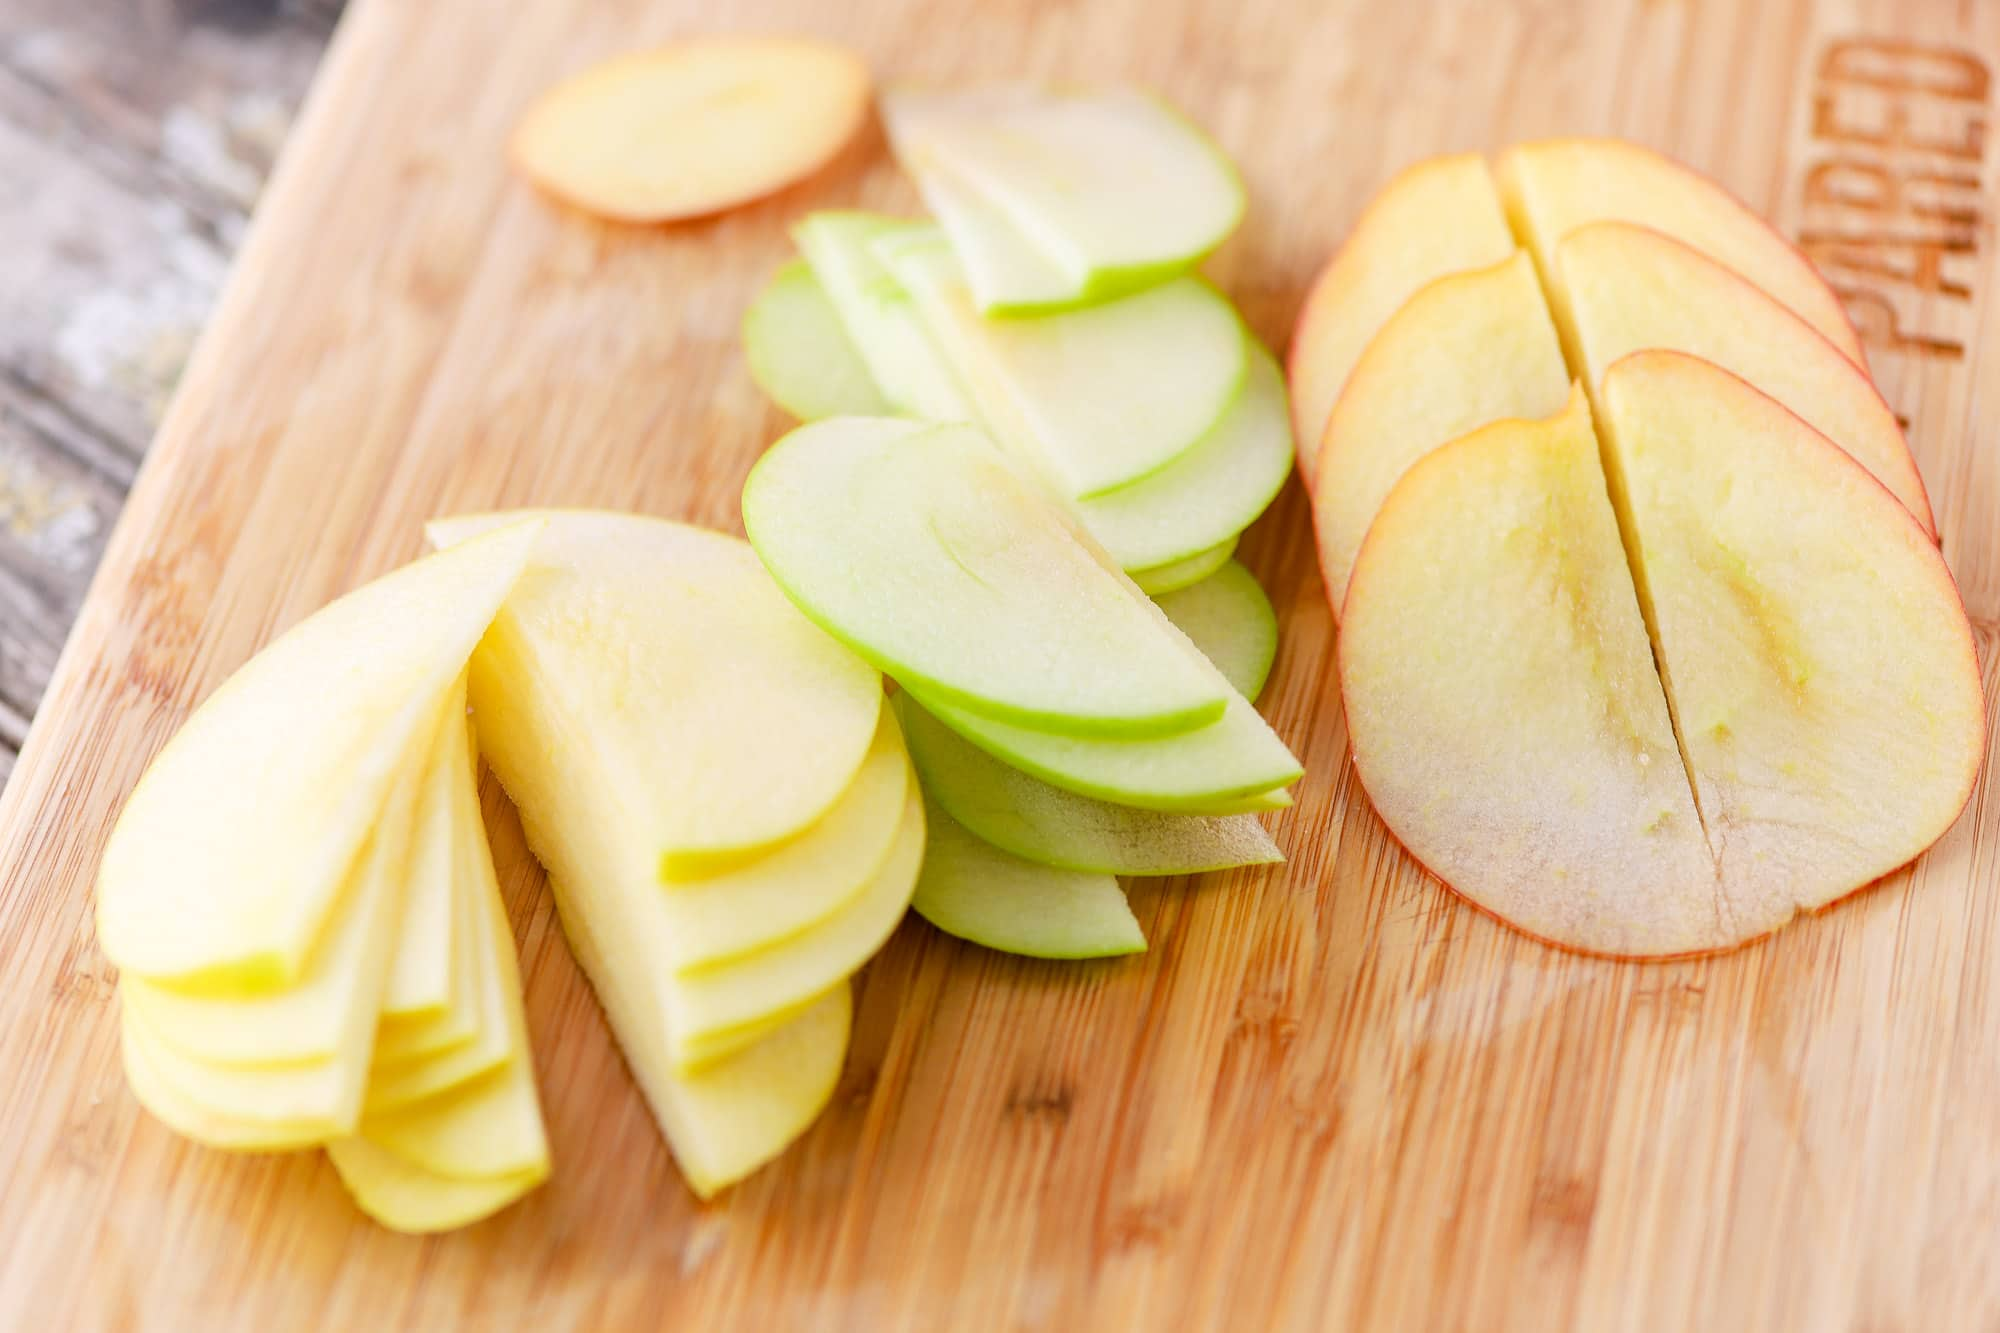 Red, Yellow, and Green Apple Slices on a Wood Cutting Board